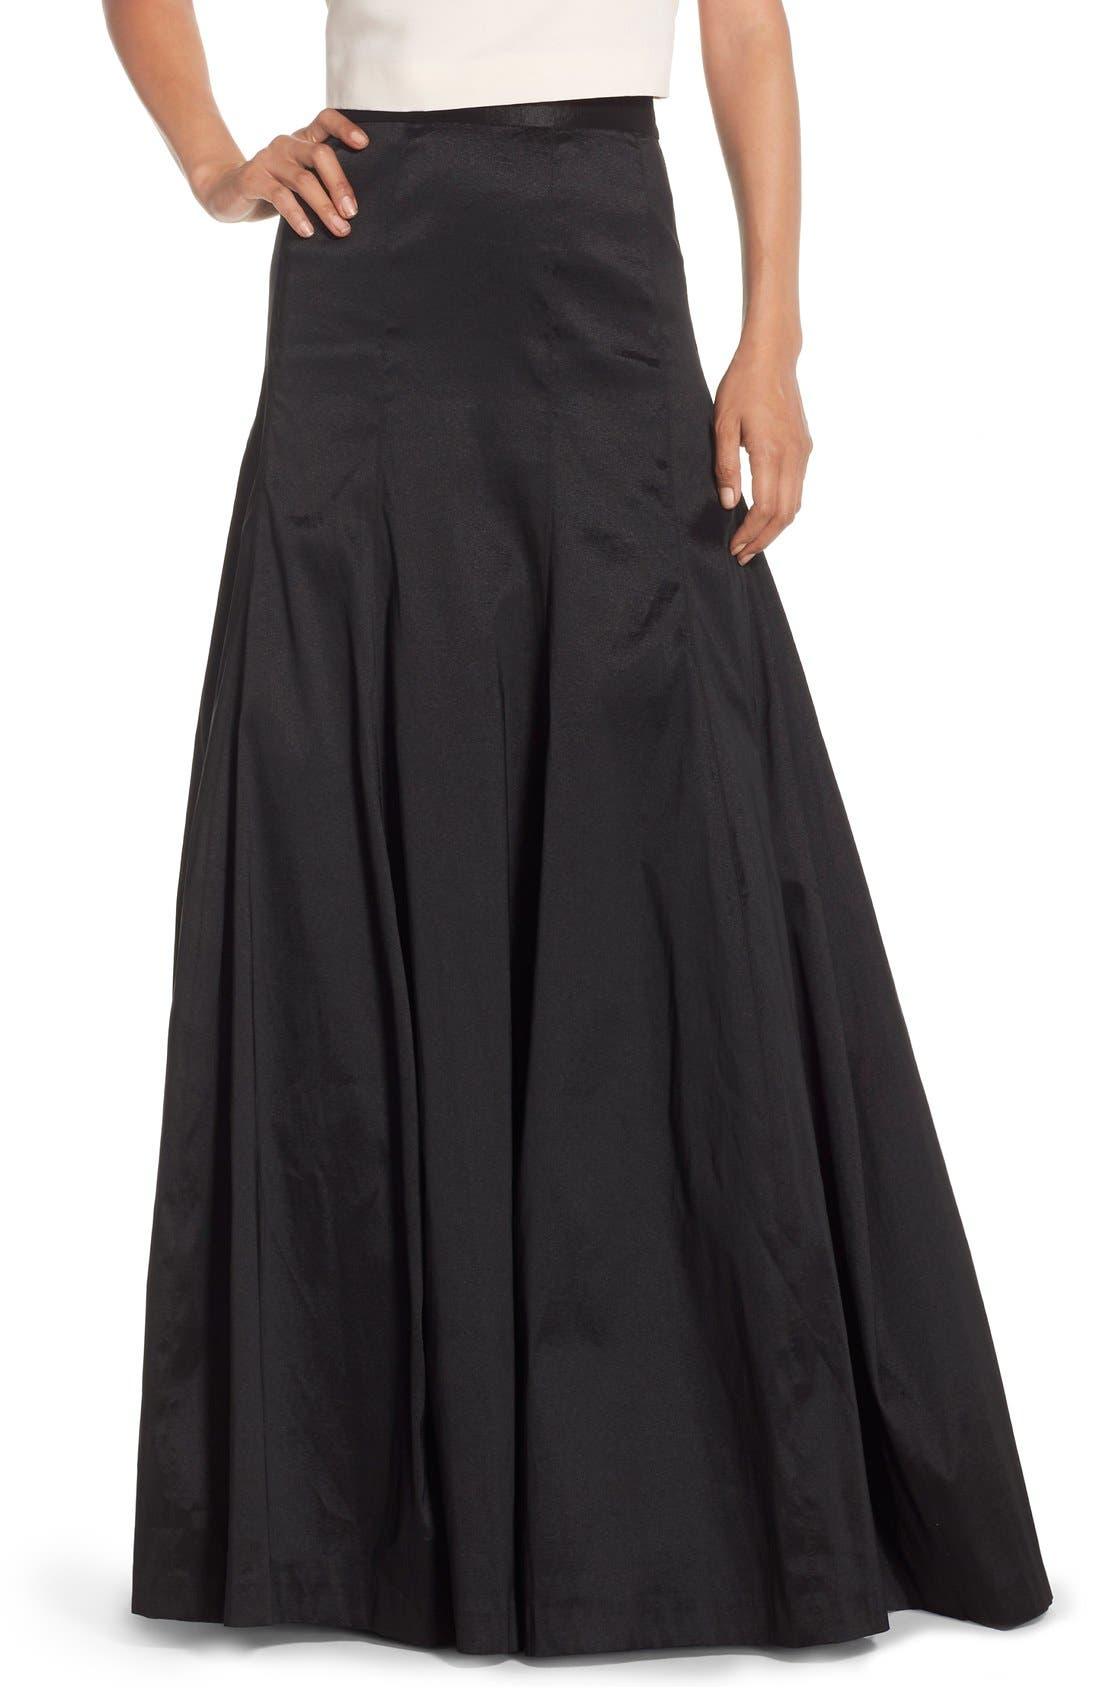 Alternate Image 1 Selected - Eliza J Taffeta Mermaid Ball Skirt